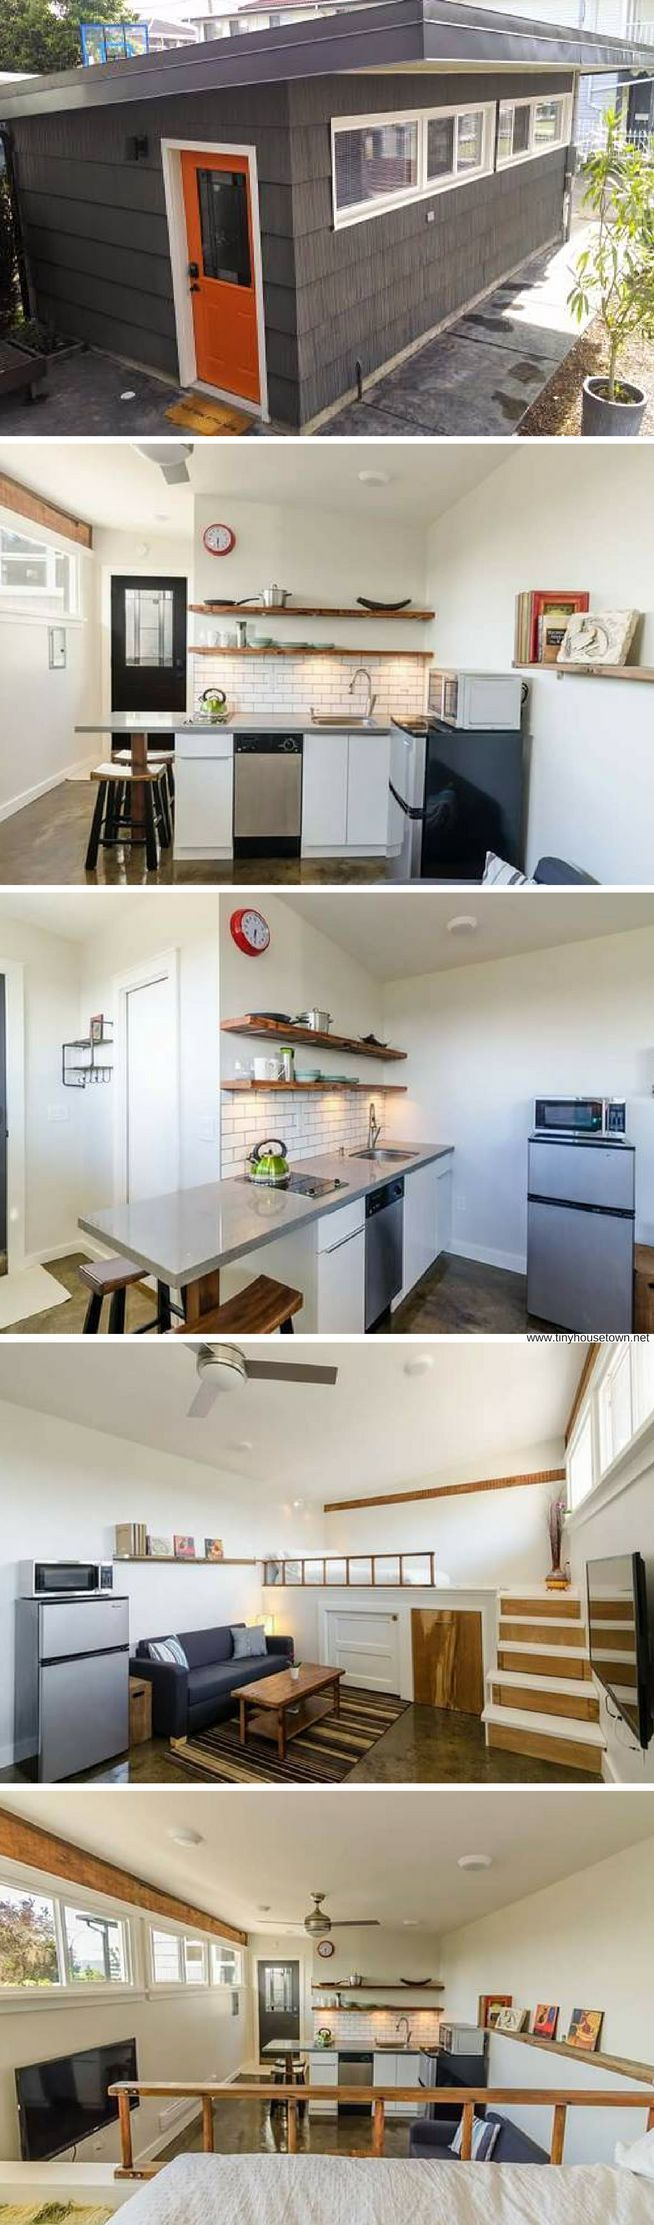 cool A 250 sq ft tiny house in Vancouver... by http://www.top-99-home-decor-pics.xyz/tiny-homes/a-250-sq-ft-tiny-house-in-vancouver/